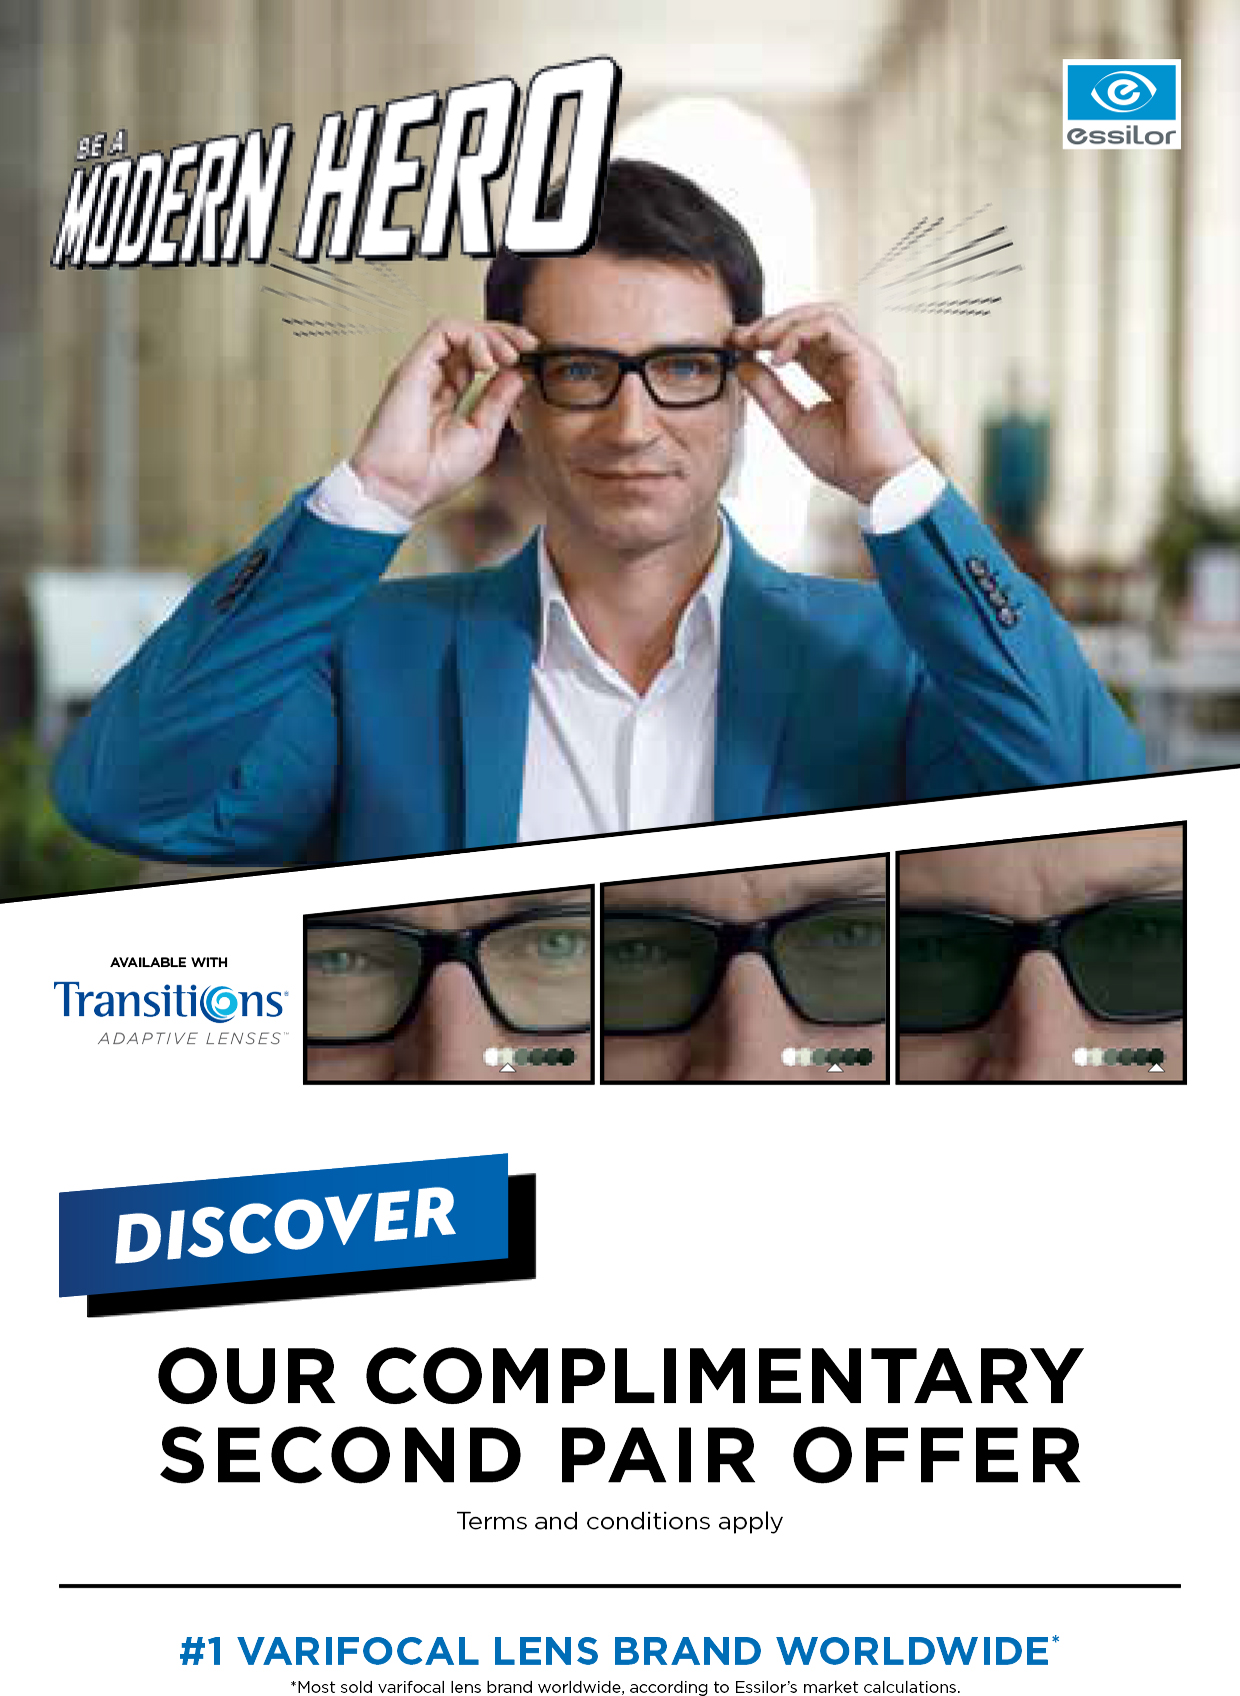 Get a FREE second pair of lenses